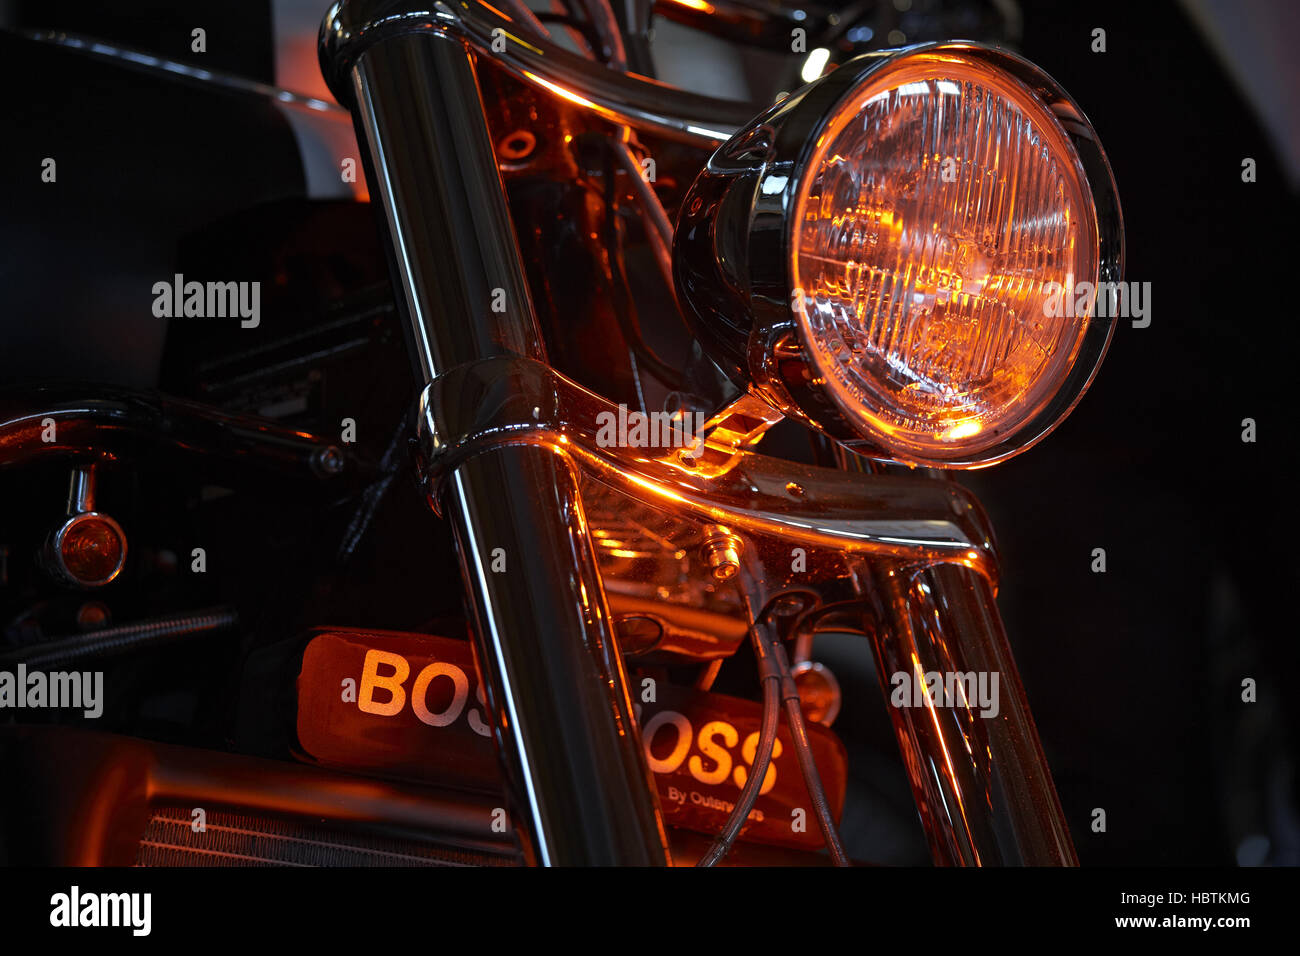 Harley Davidson - Lights - Stock Image